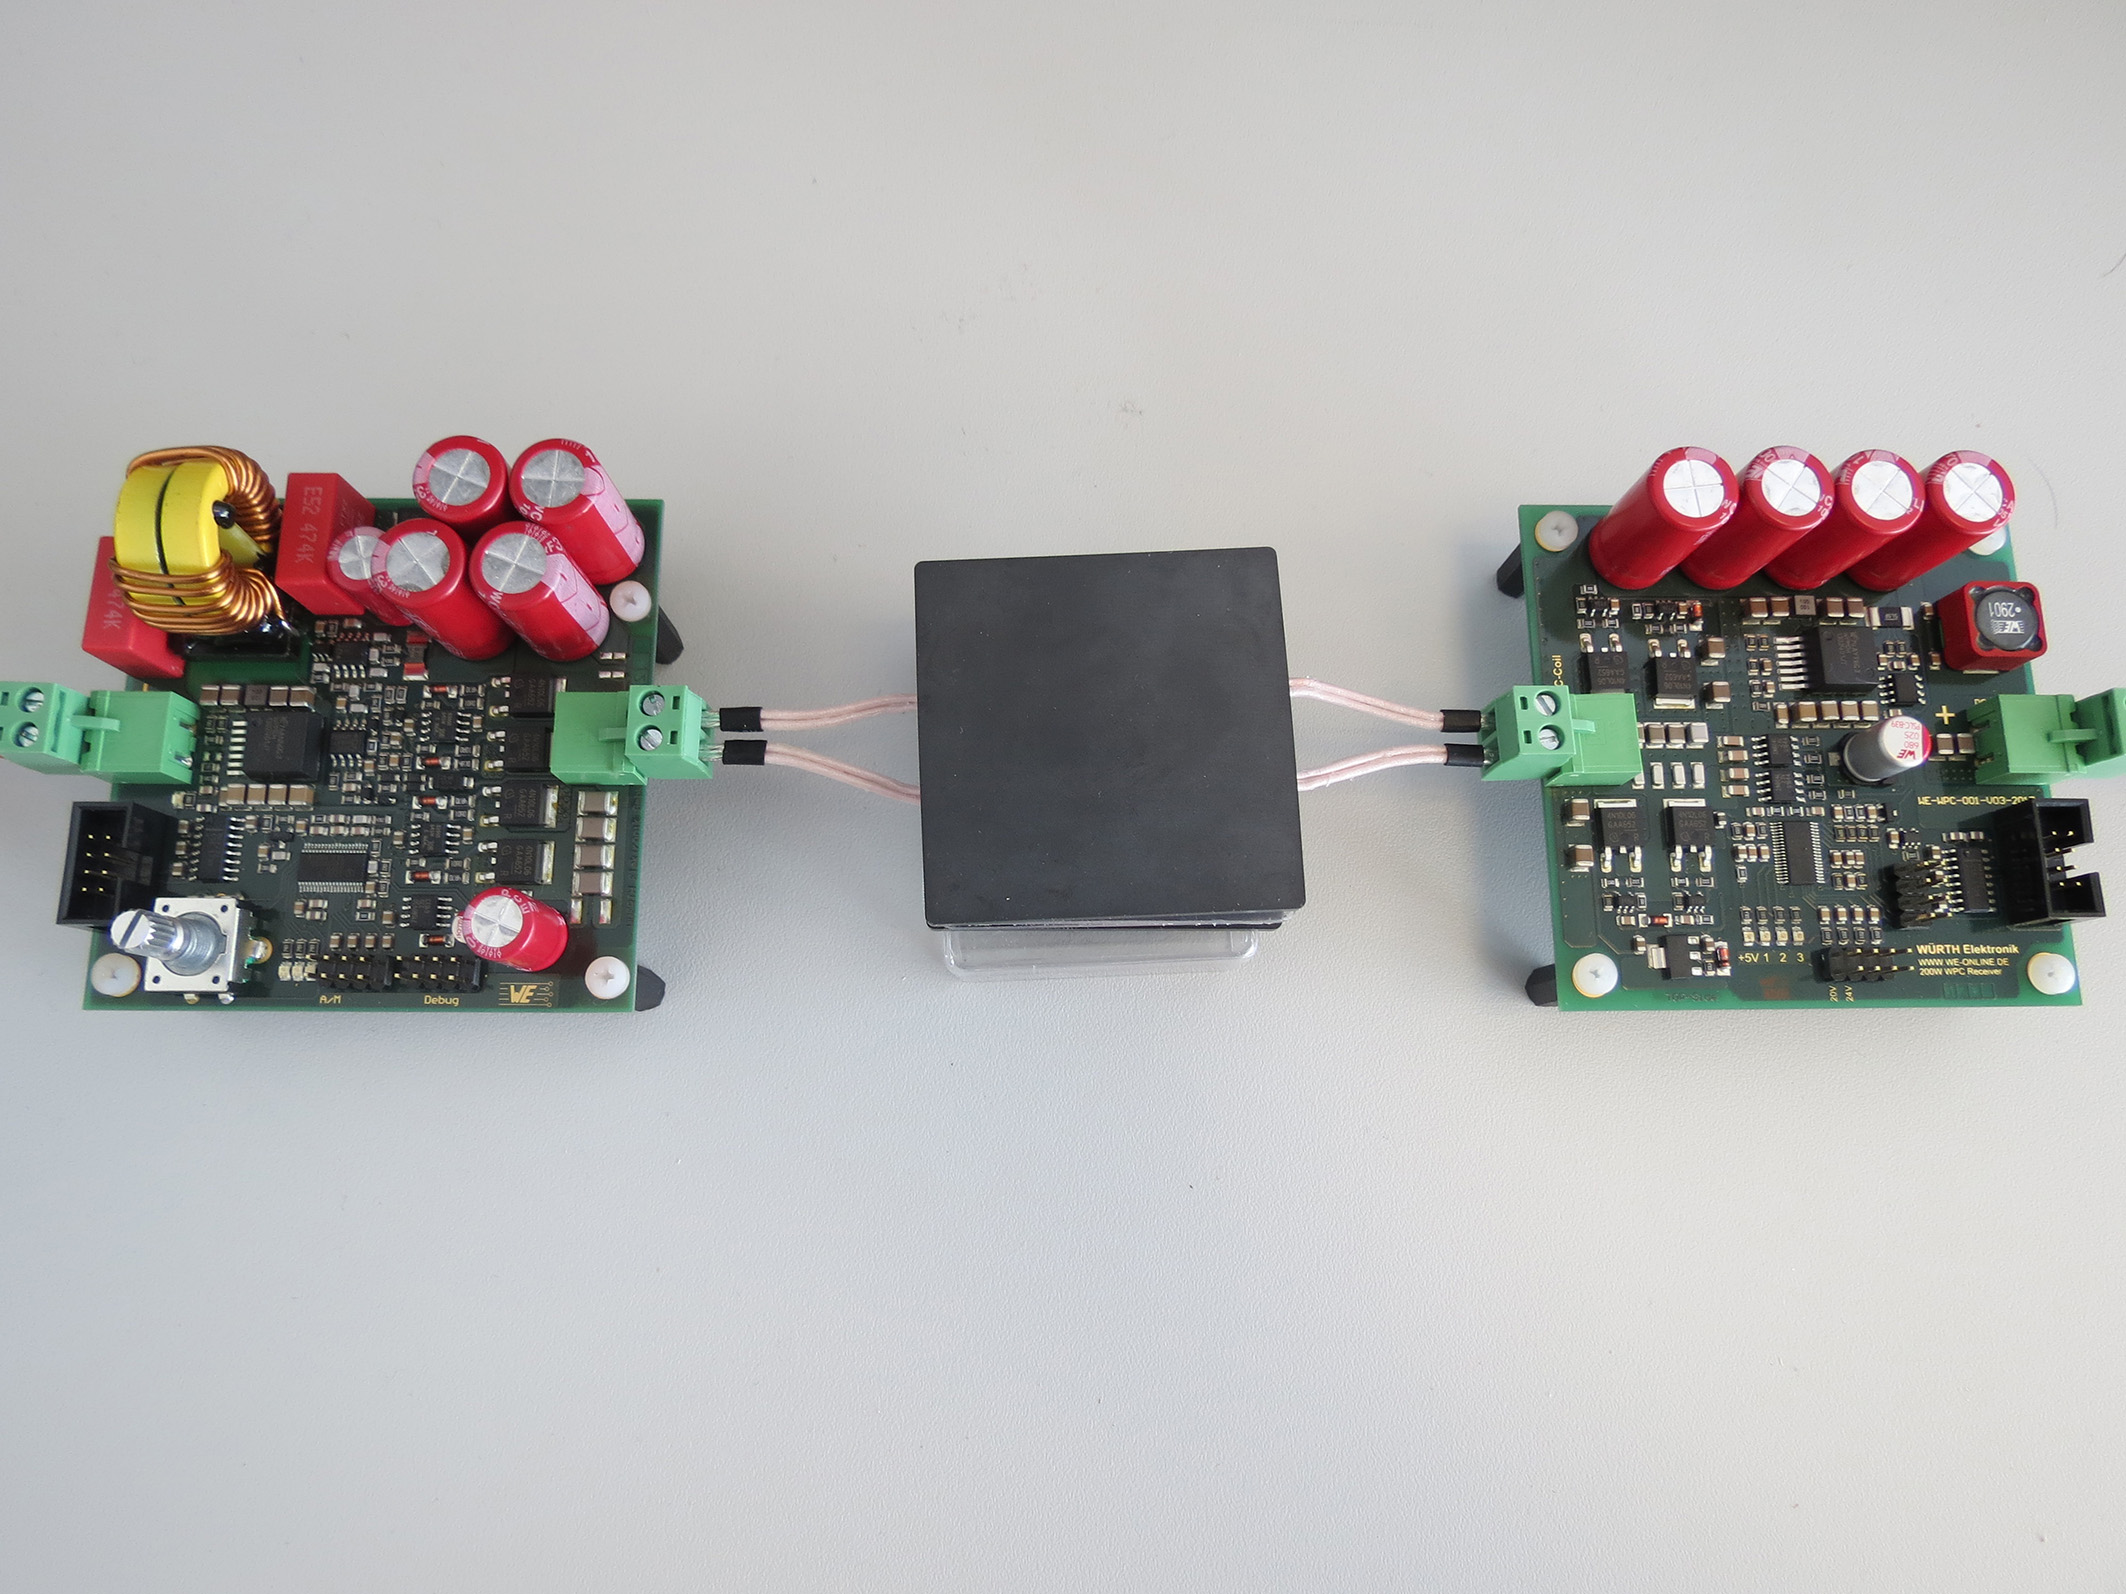 New 200-watt development system: Combining wireless power and data transmission